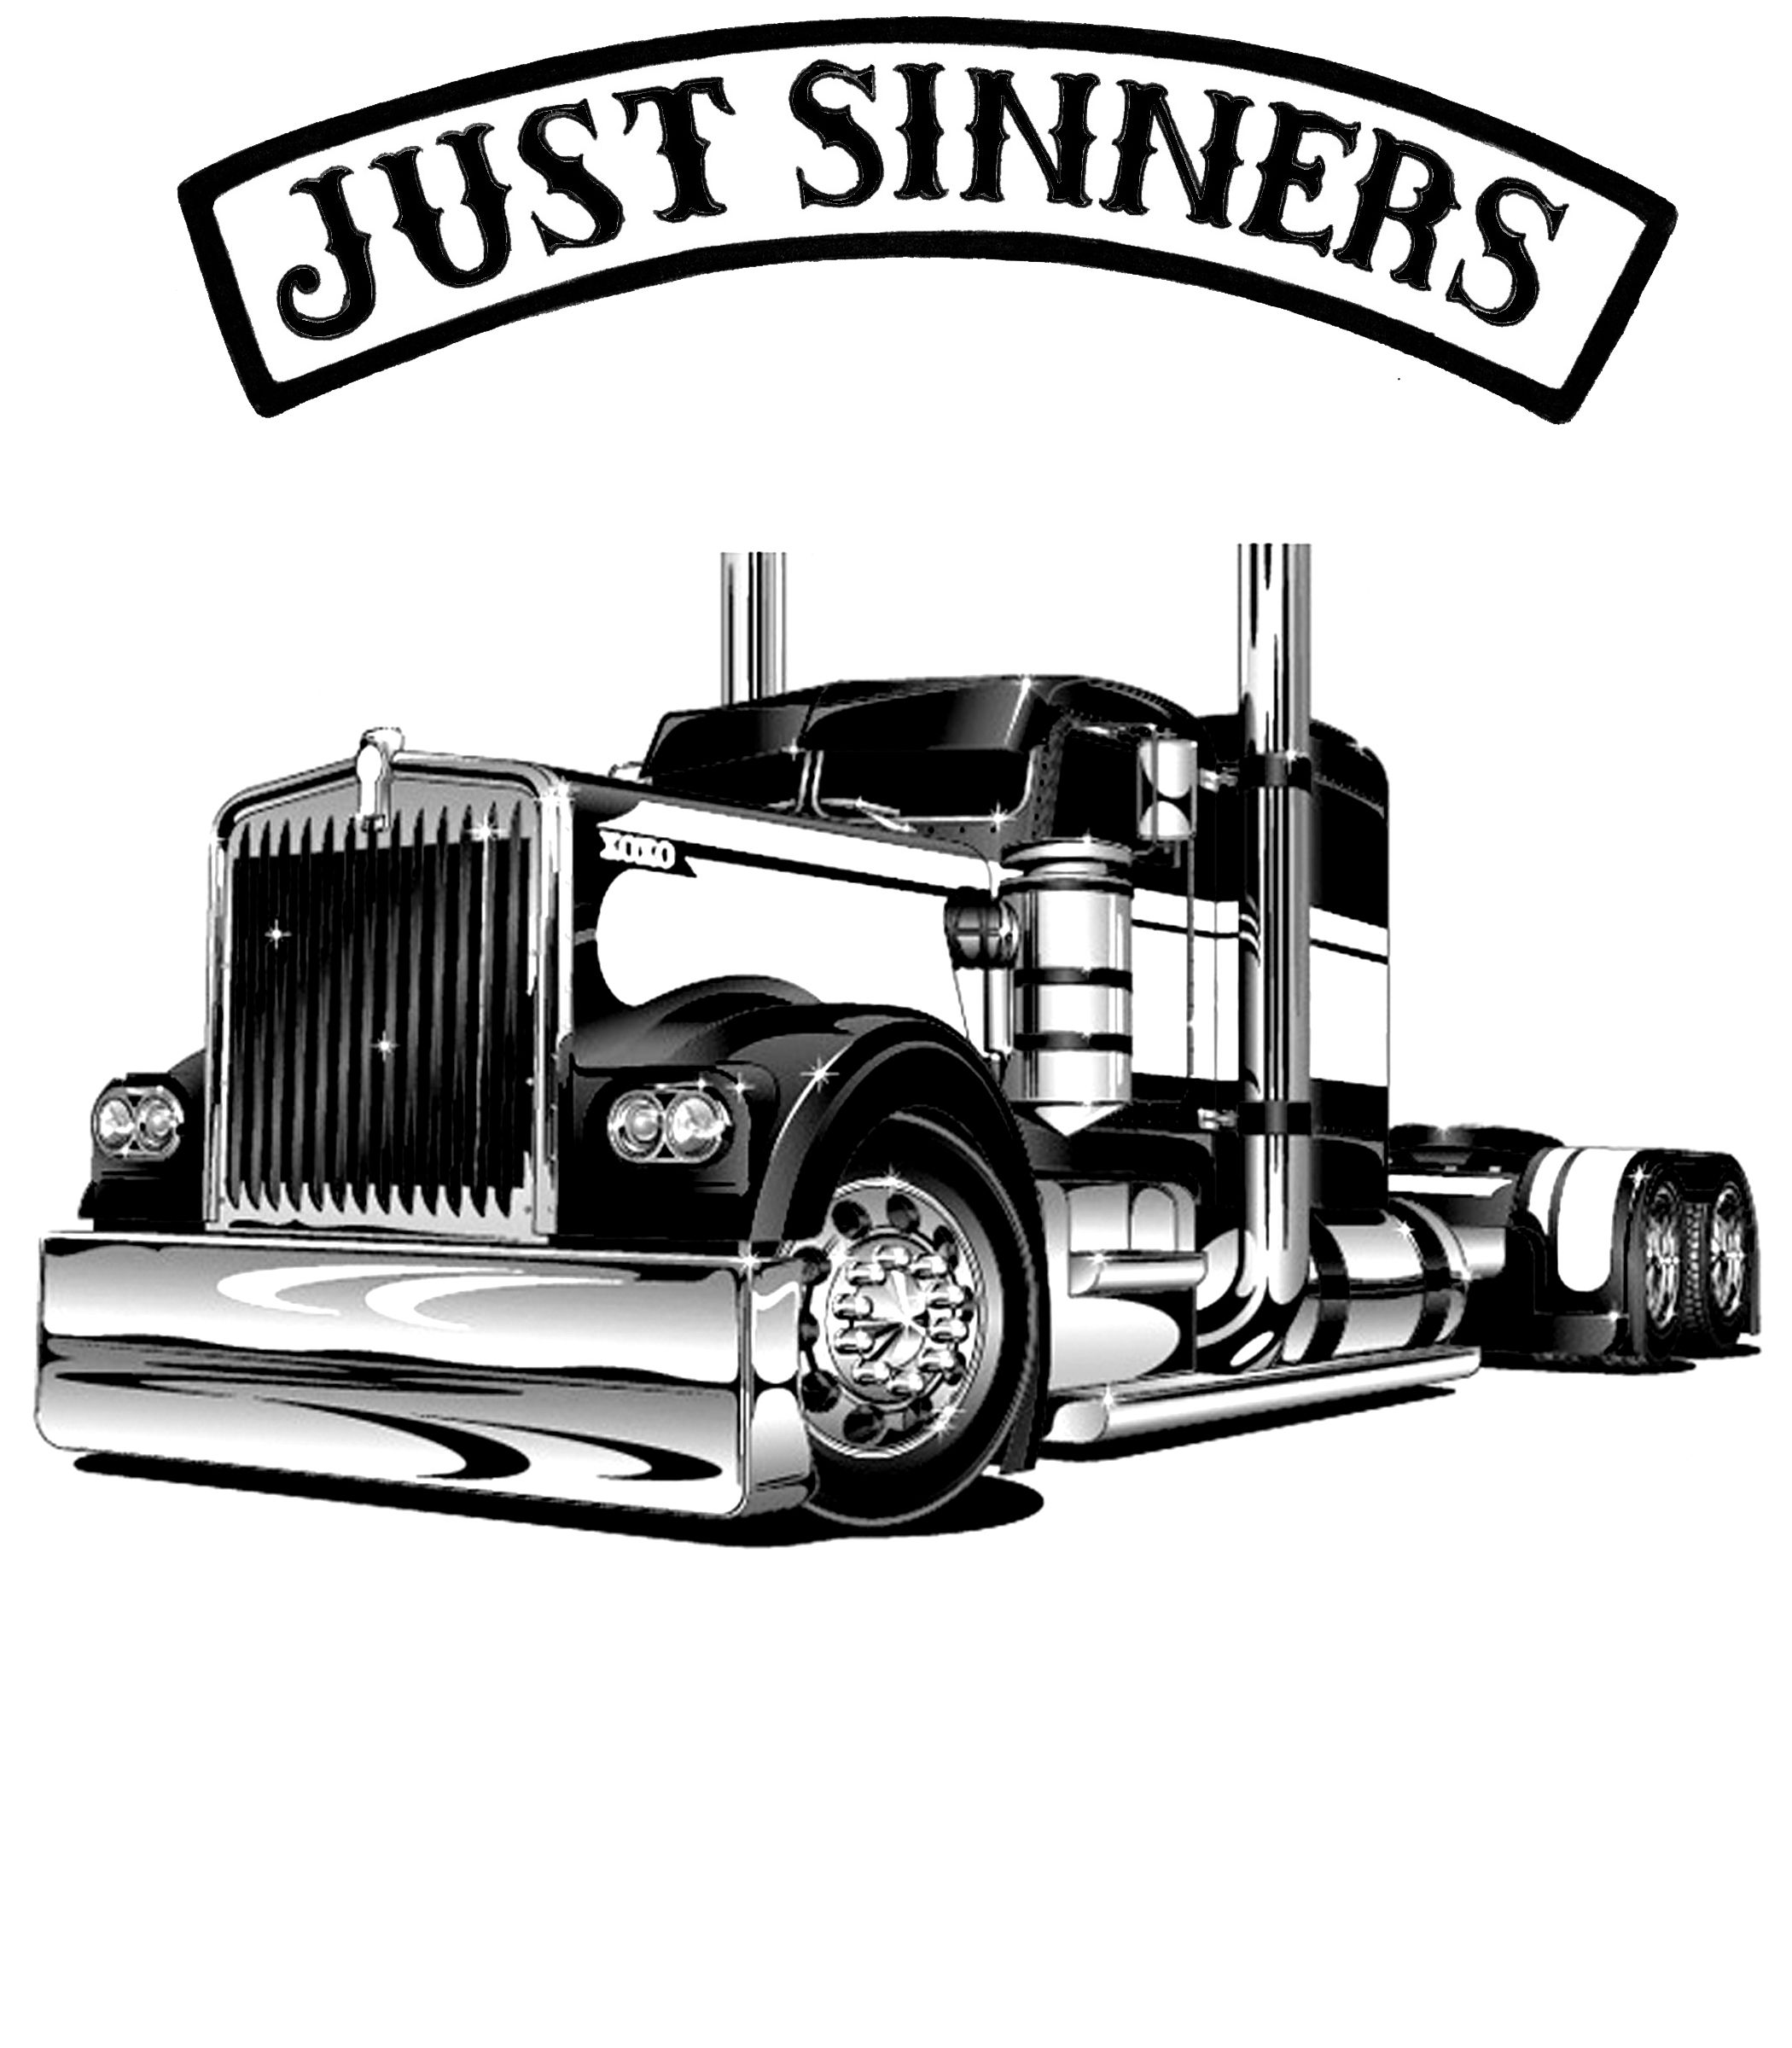 JUST SINNERS SEMI TRUCK | trailers | Pinterest